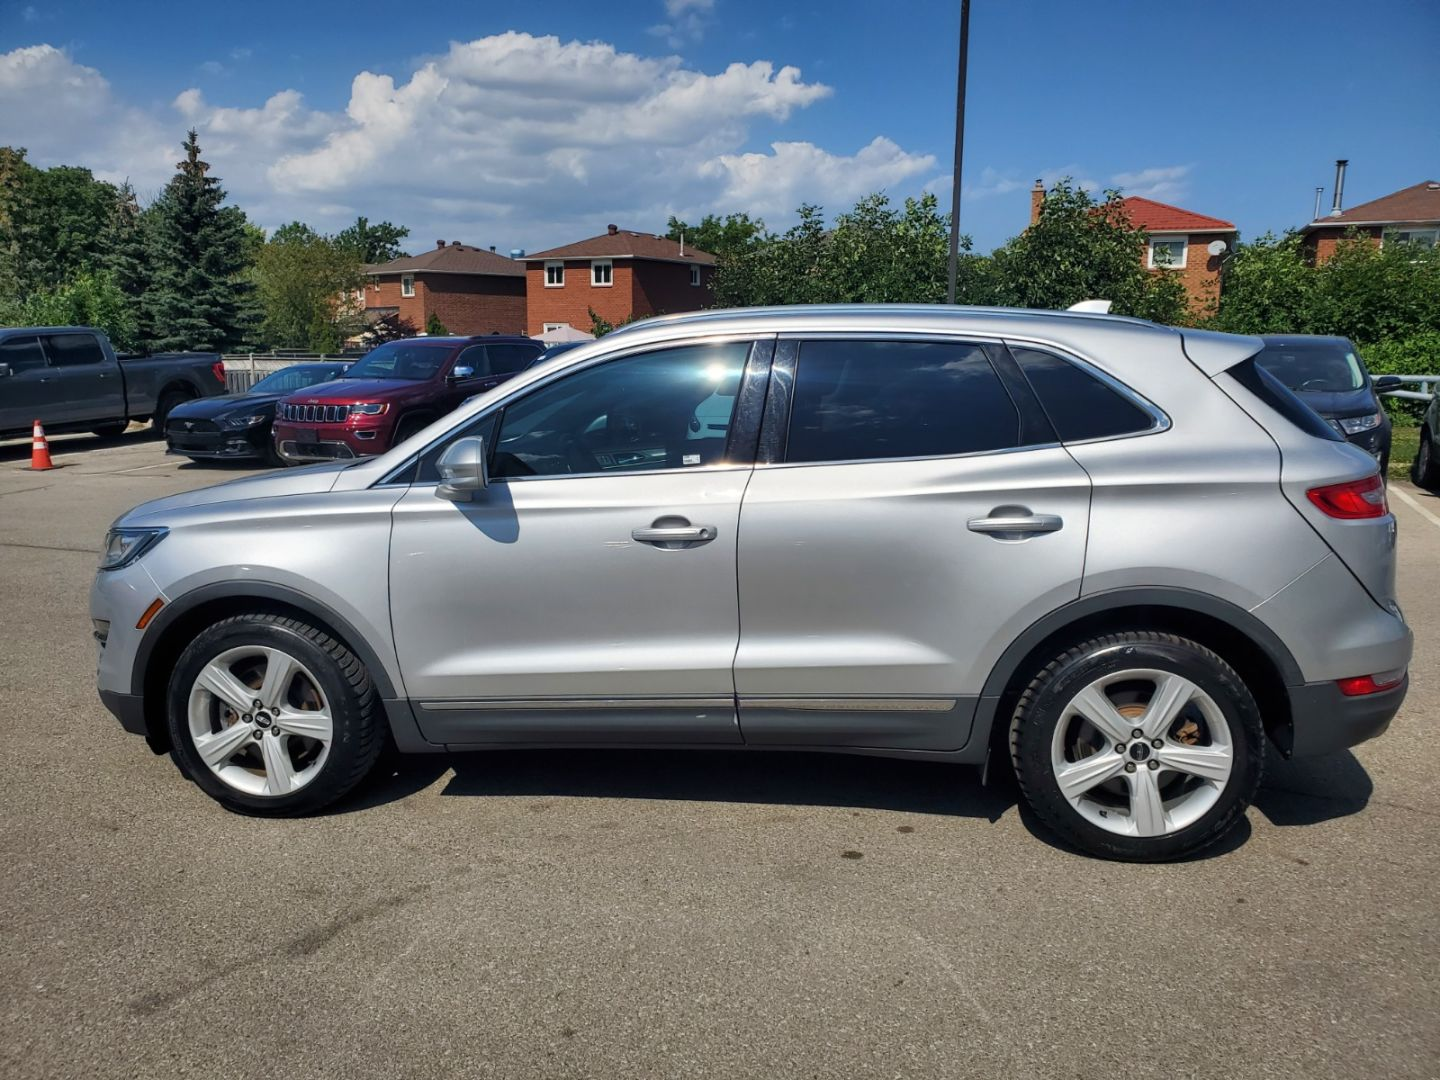 2015 Lincoln MKC  for sale in Mississauga, Ontario